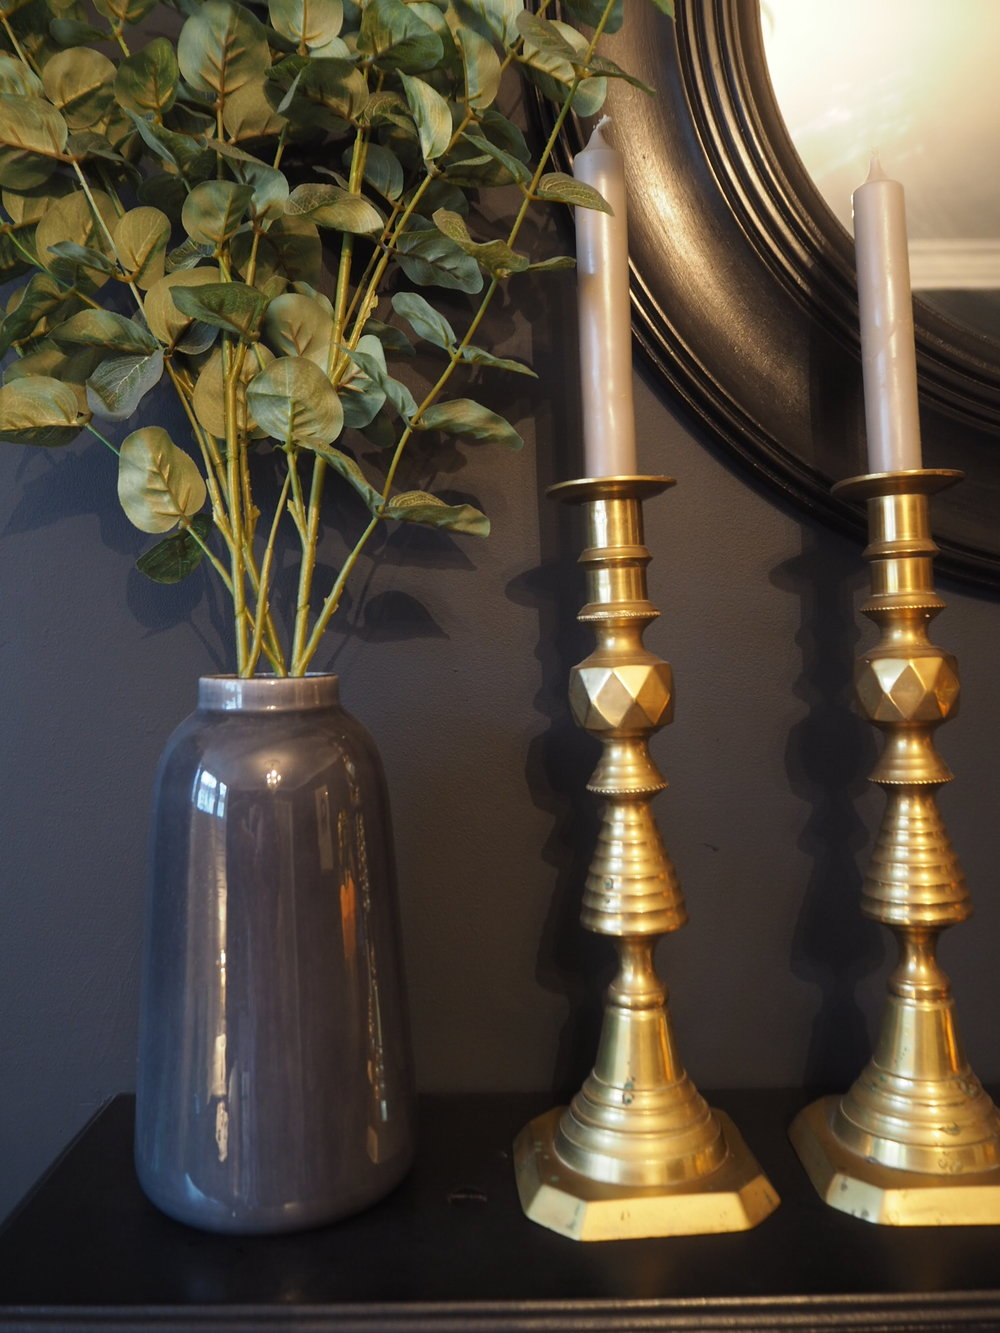 Brass candle sticks and grey/ teal vase and faux flowers